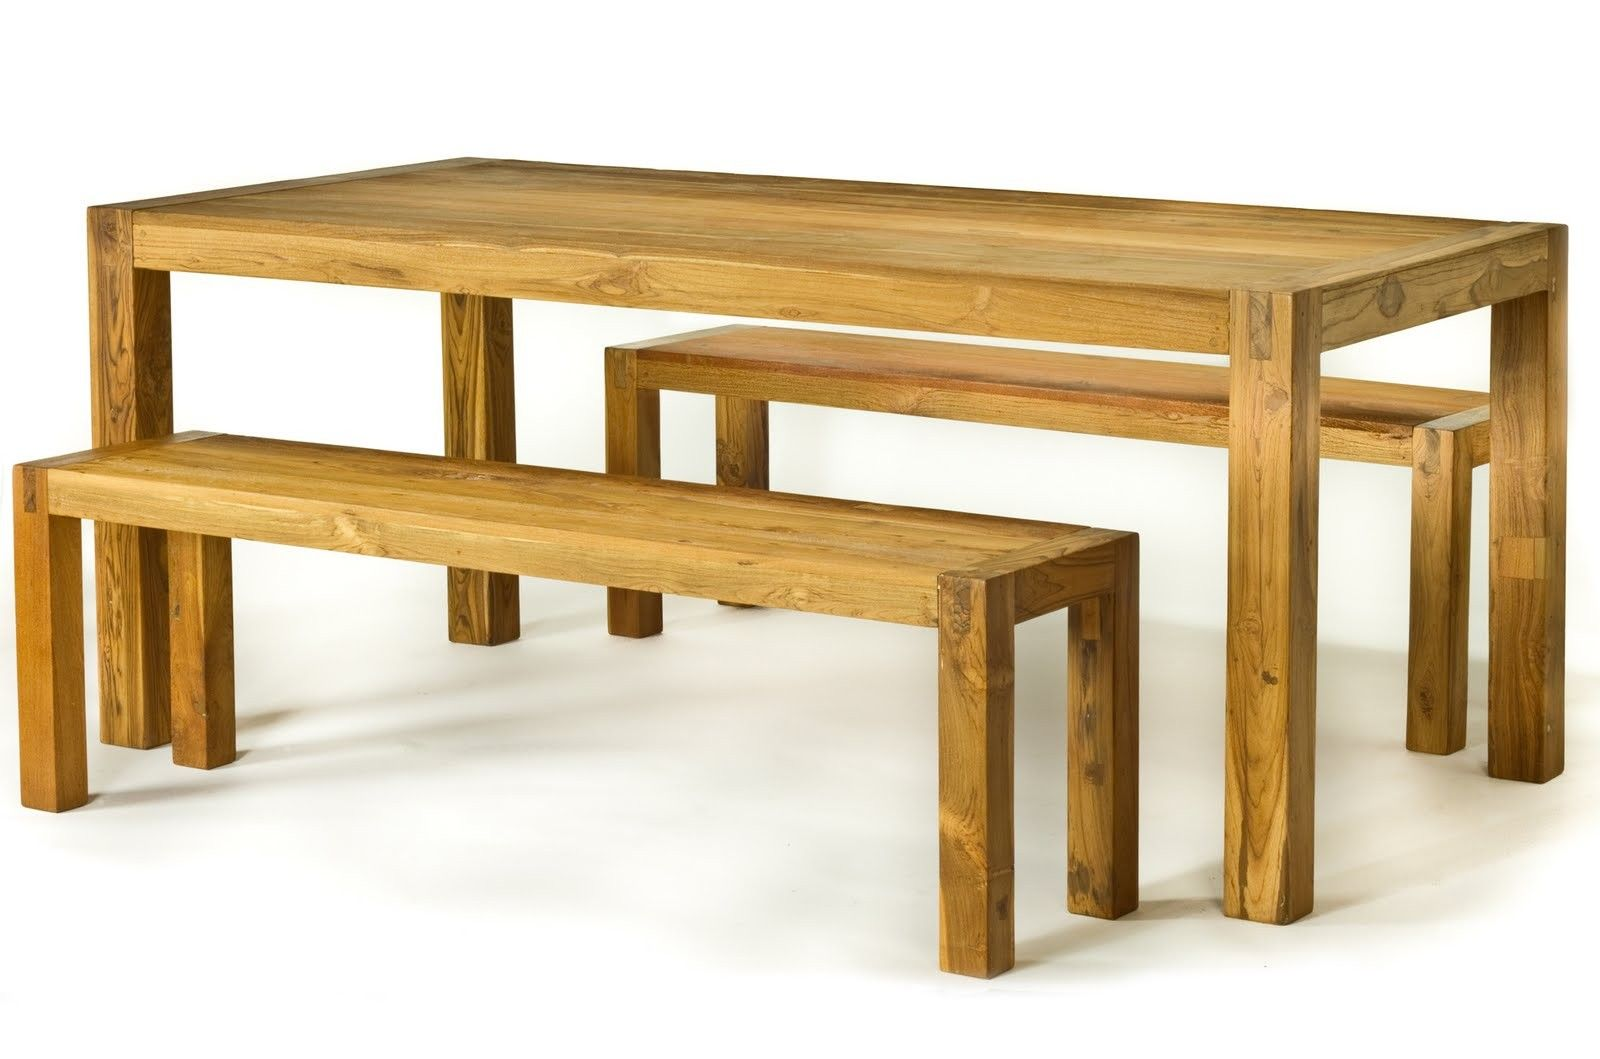 wooden dining table | Spark\'s Reclaimed Teak Wood Dining Table and ...